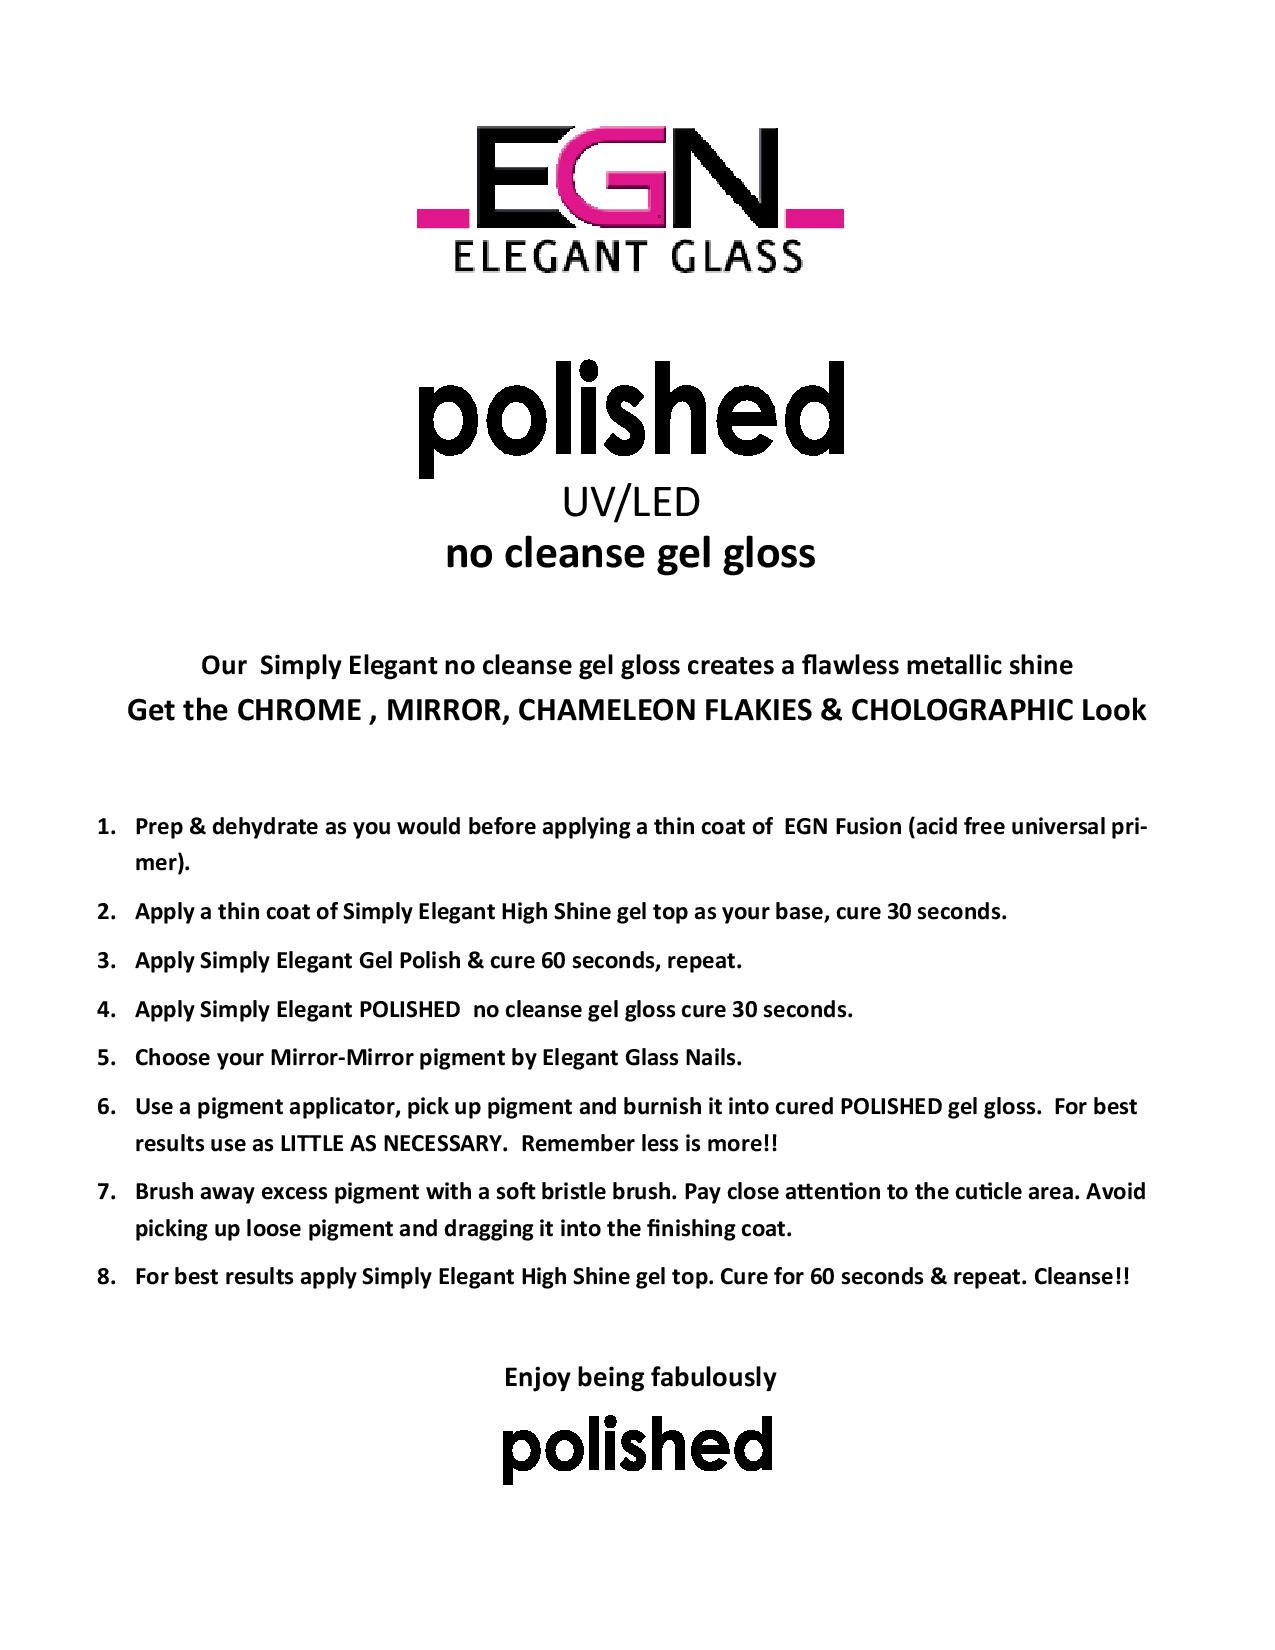 polished-updated-1-page-001.jpg